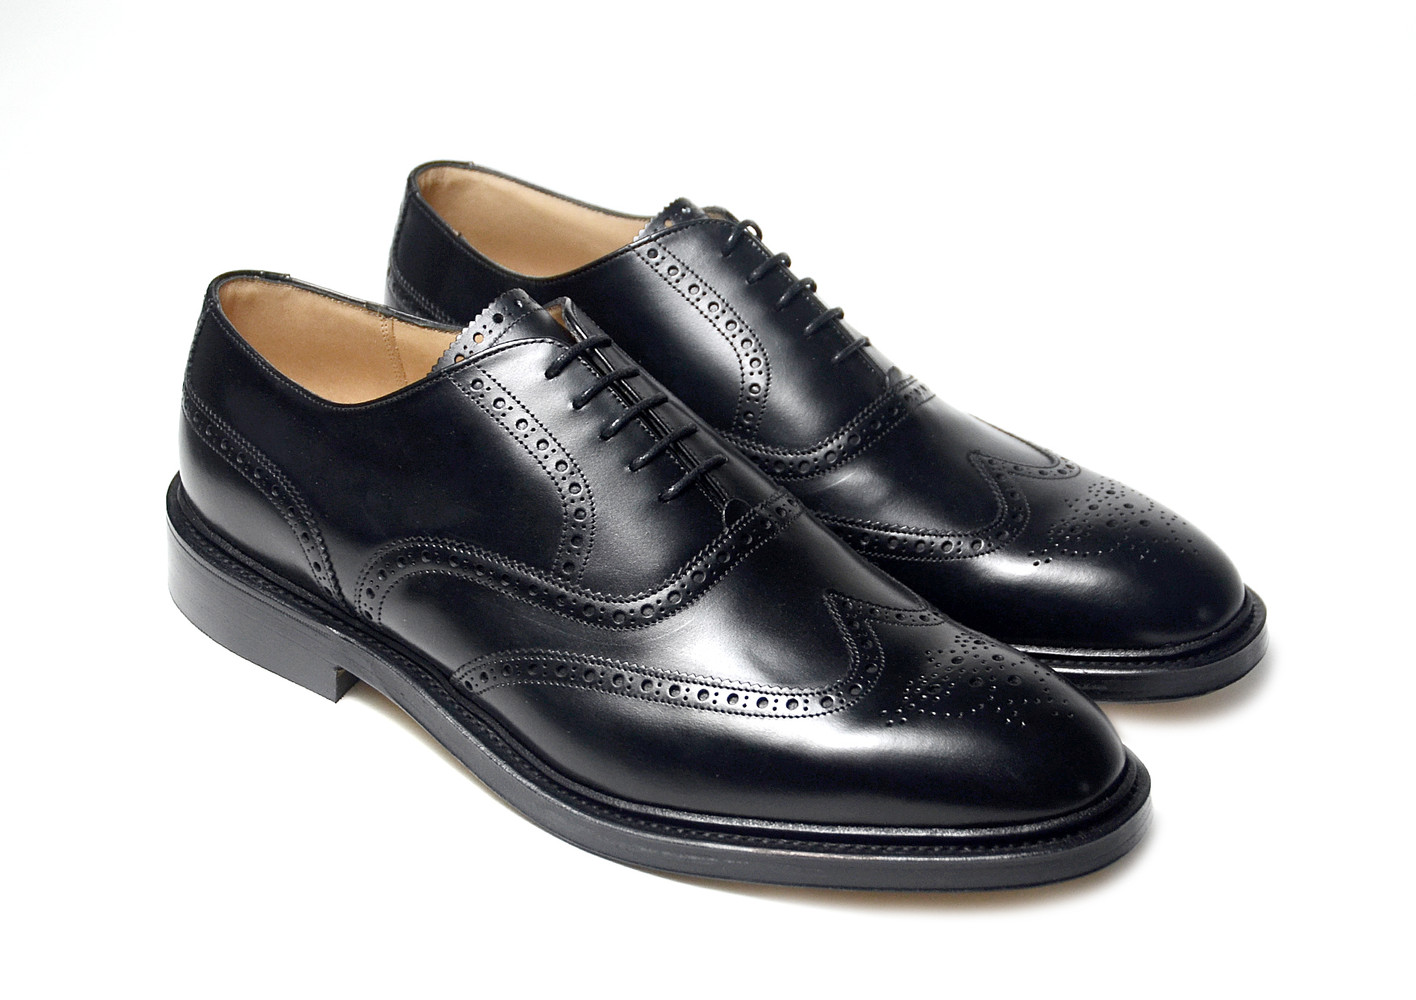 DACK'S ROBSON - OUR STYLISH WING TIP